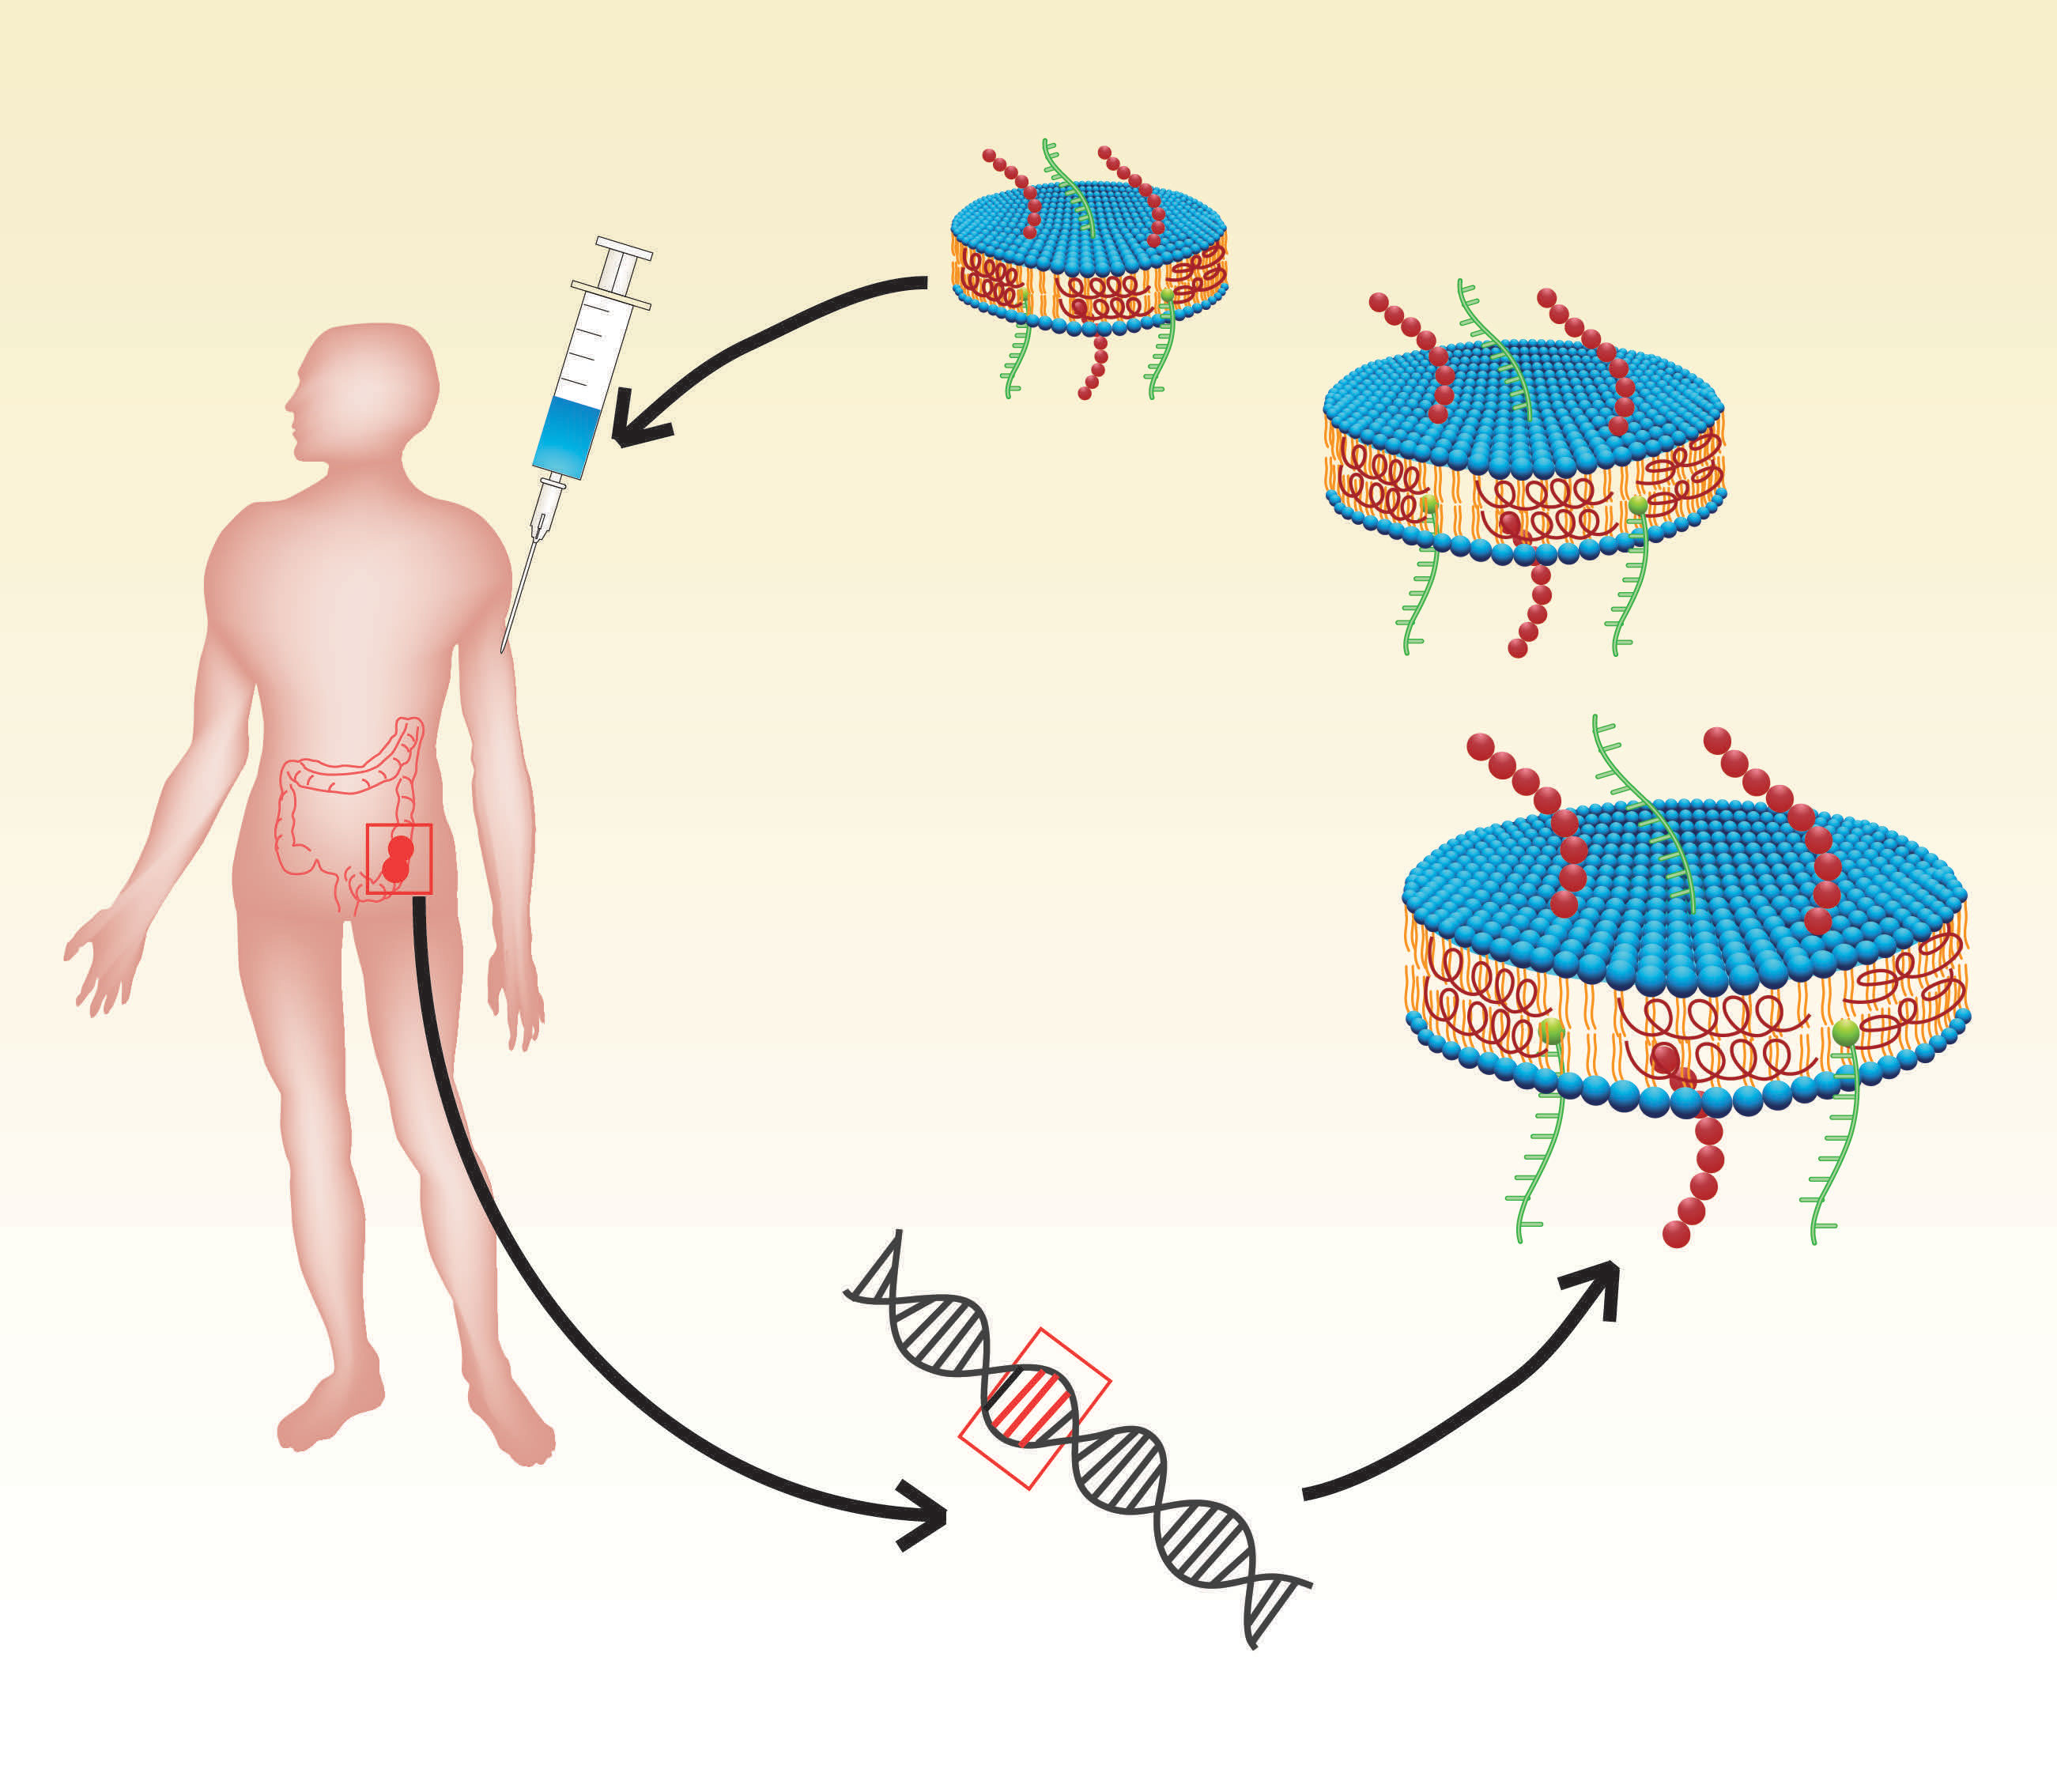 The therapeutic cancer vaccine employs nanodiscs (in blue) loaded with tumor neoantigens, which are unique mutations from the patient's own tumor cells. By generating T-cells to recognize the neoantigens, the nanodiscs can target a patient's cancer mutations and fight to eliminate cancer cells and prevent tumor growth. Image credit: James Moon, John Gideon Searle